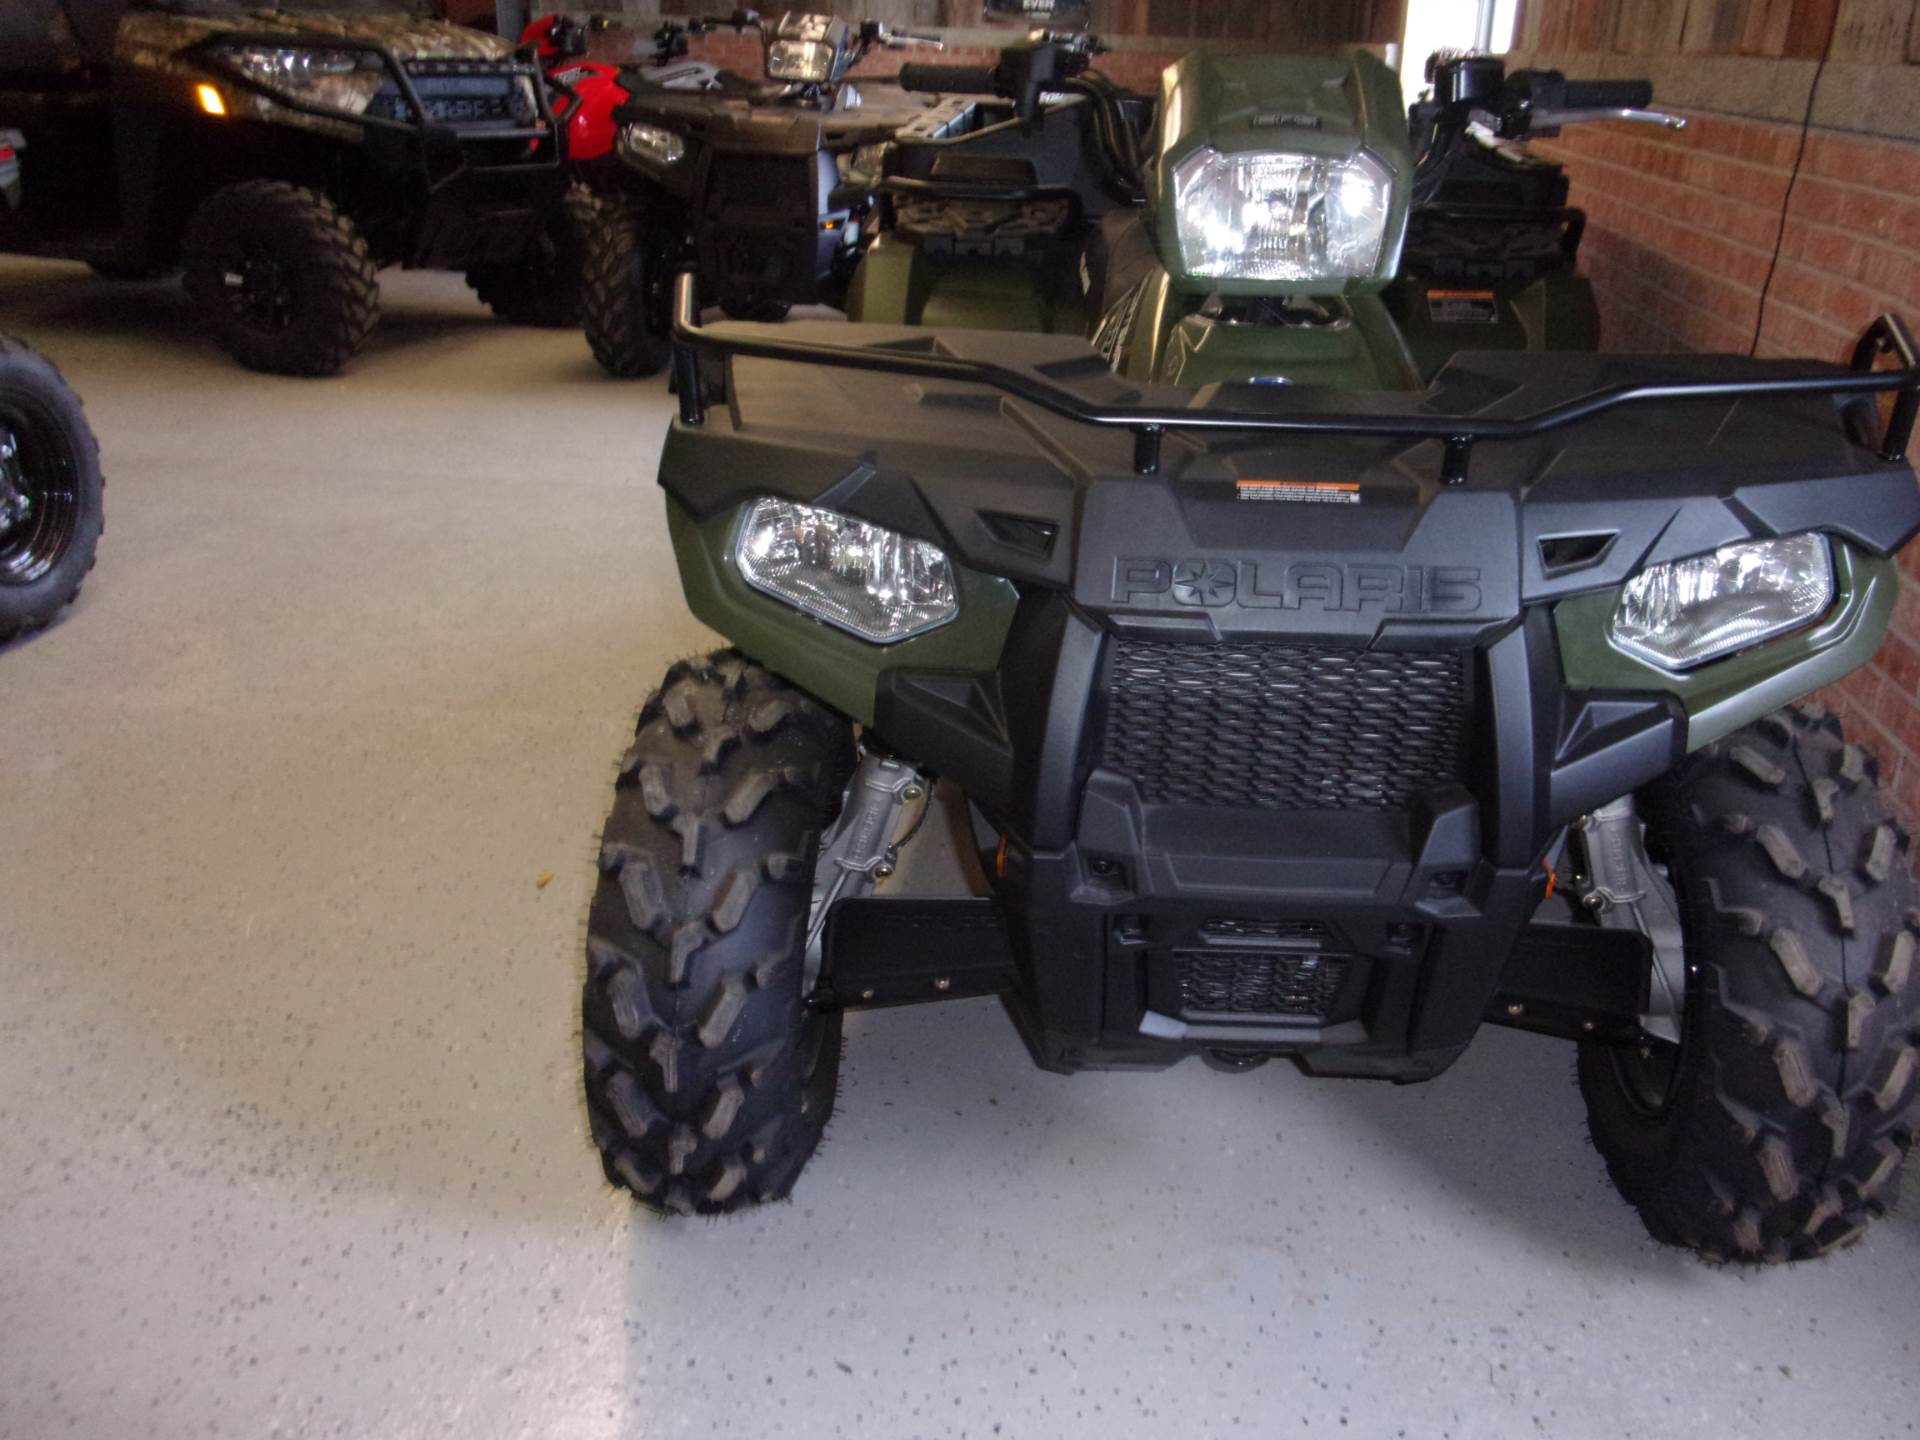 2019 Polaris Sportsman 6x6 570 in Houston, Ohio - Photo 2